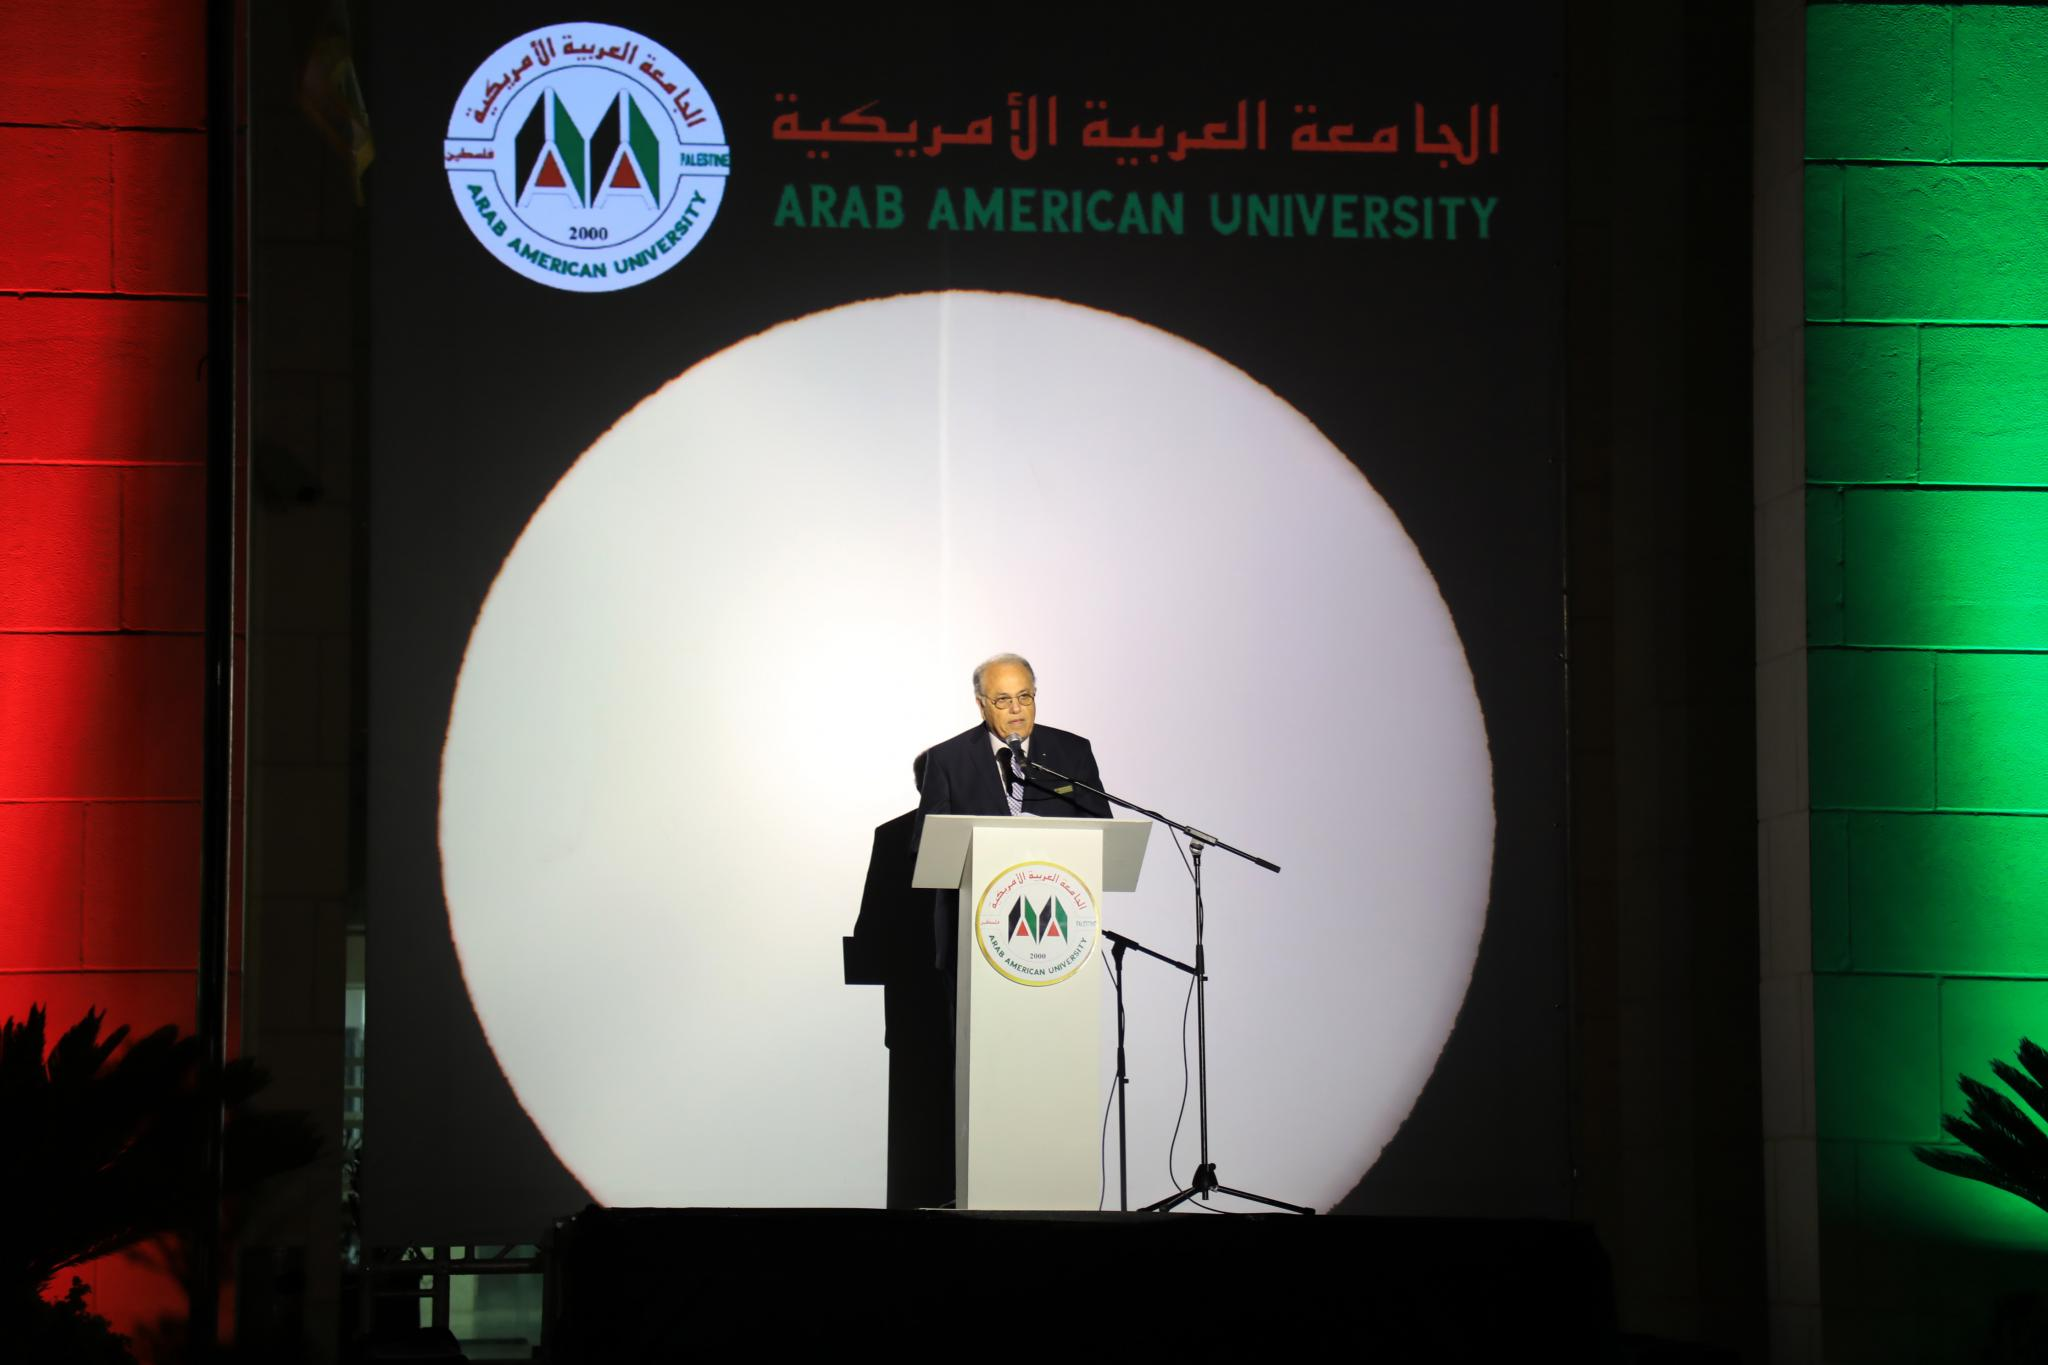 Prof. Ali Zeidan Abu Zuhri- the University President's speech in the 20th anniversary ceremony